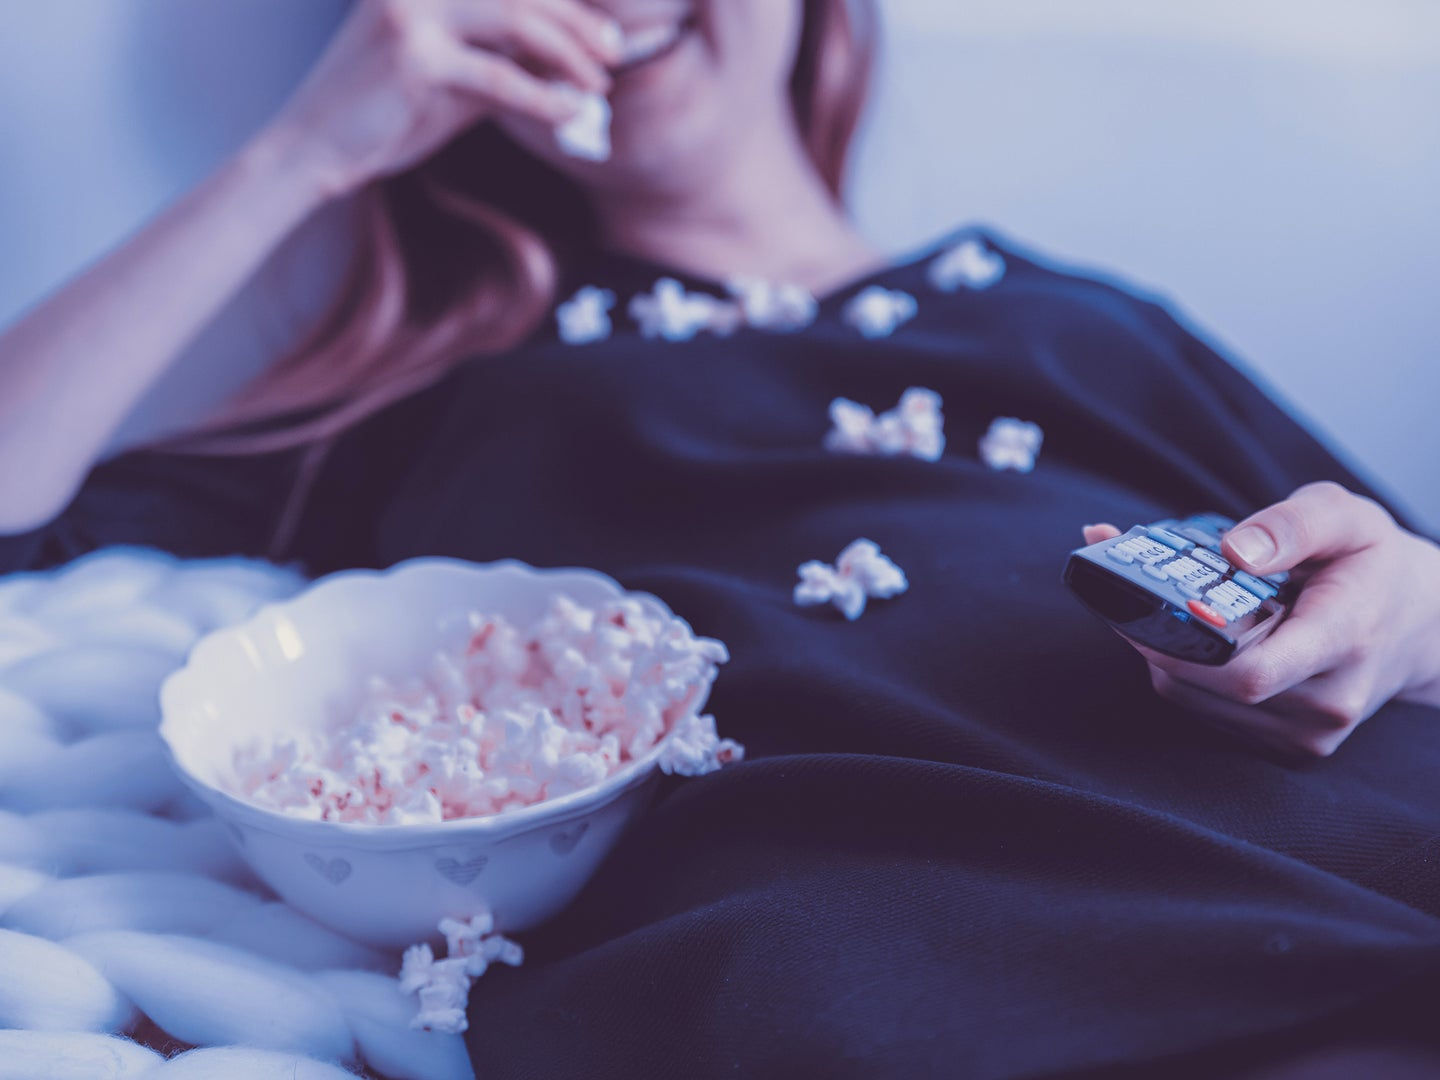 A woman lounging on a couch, eating a bowl of popcorn, while holding a TV remote with popcorn all over her chest.